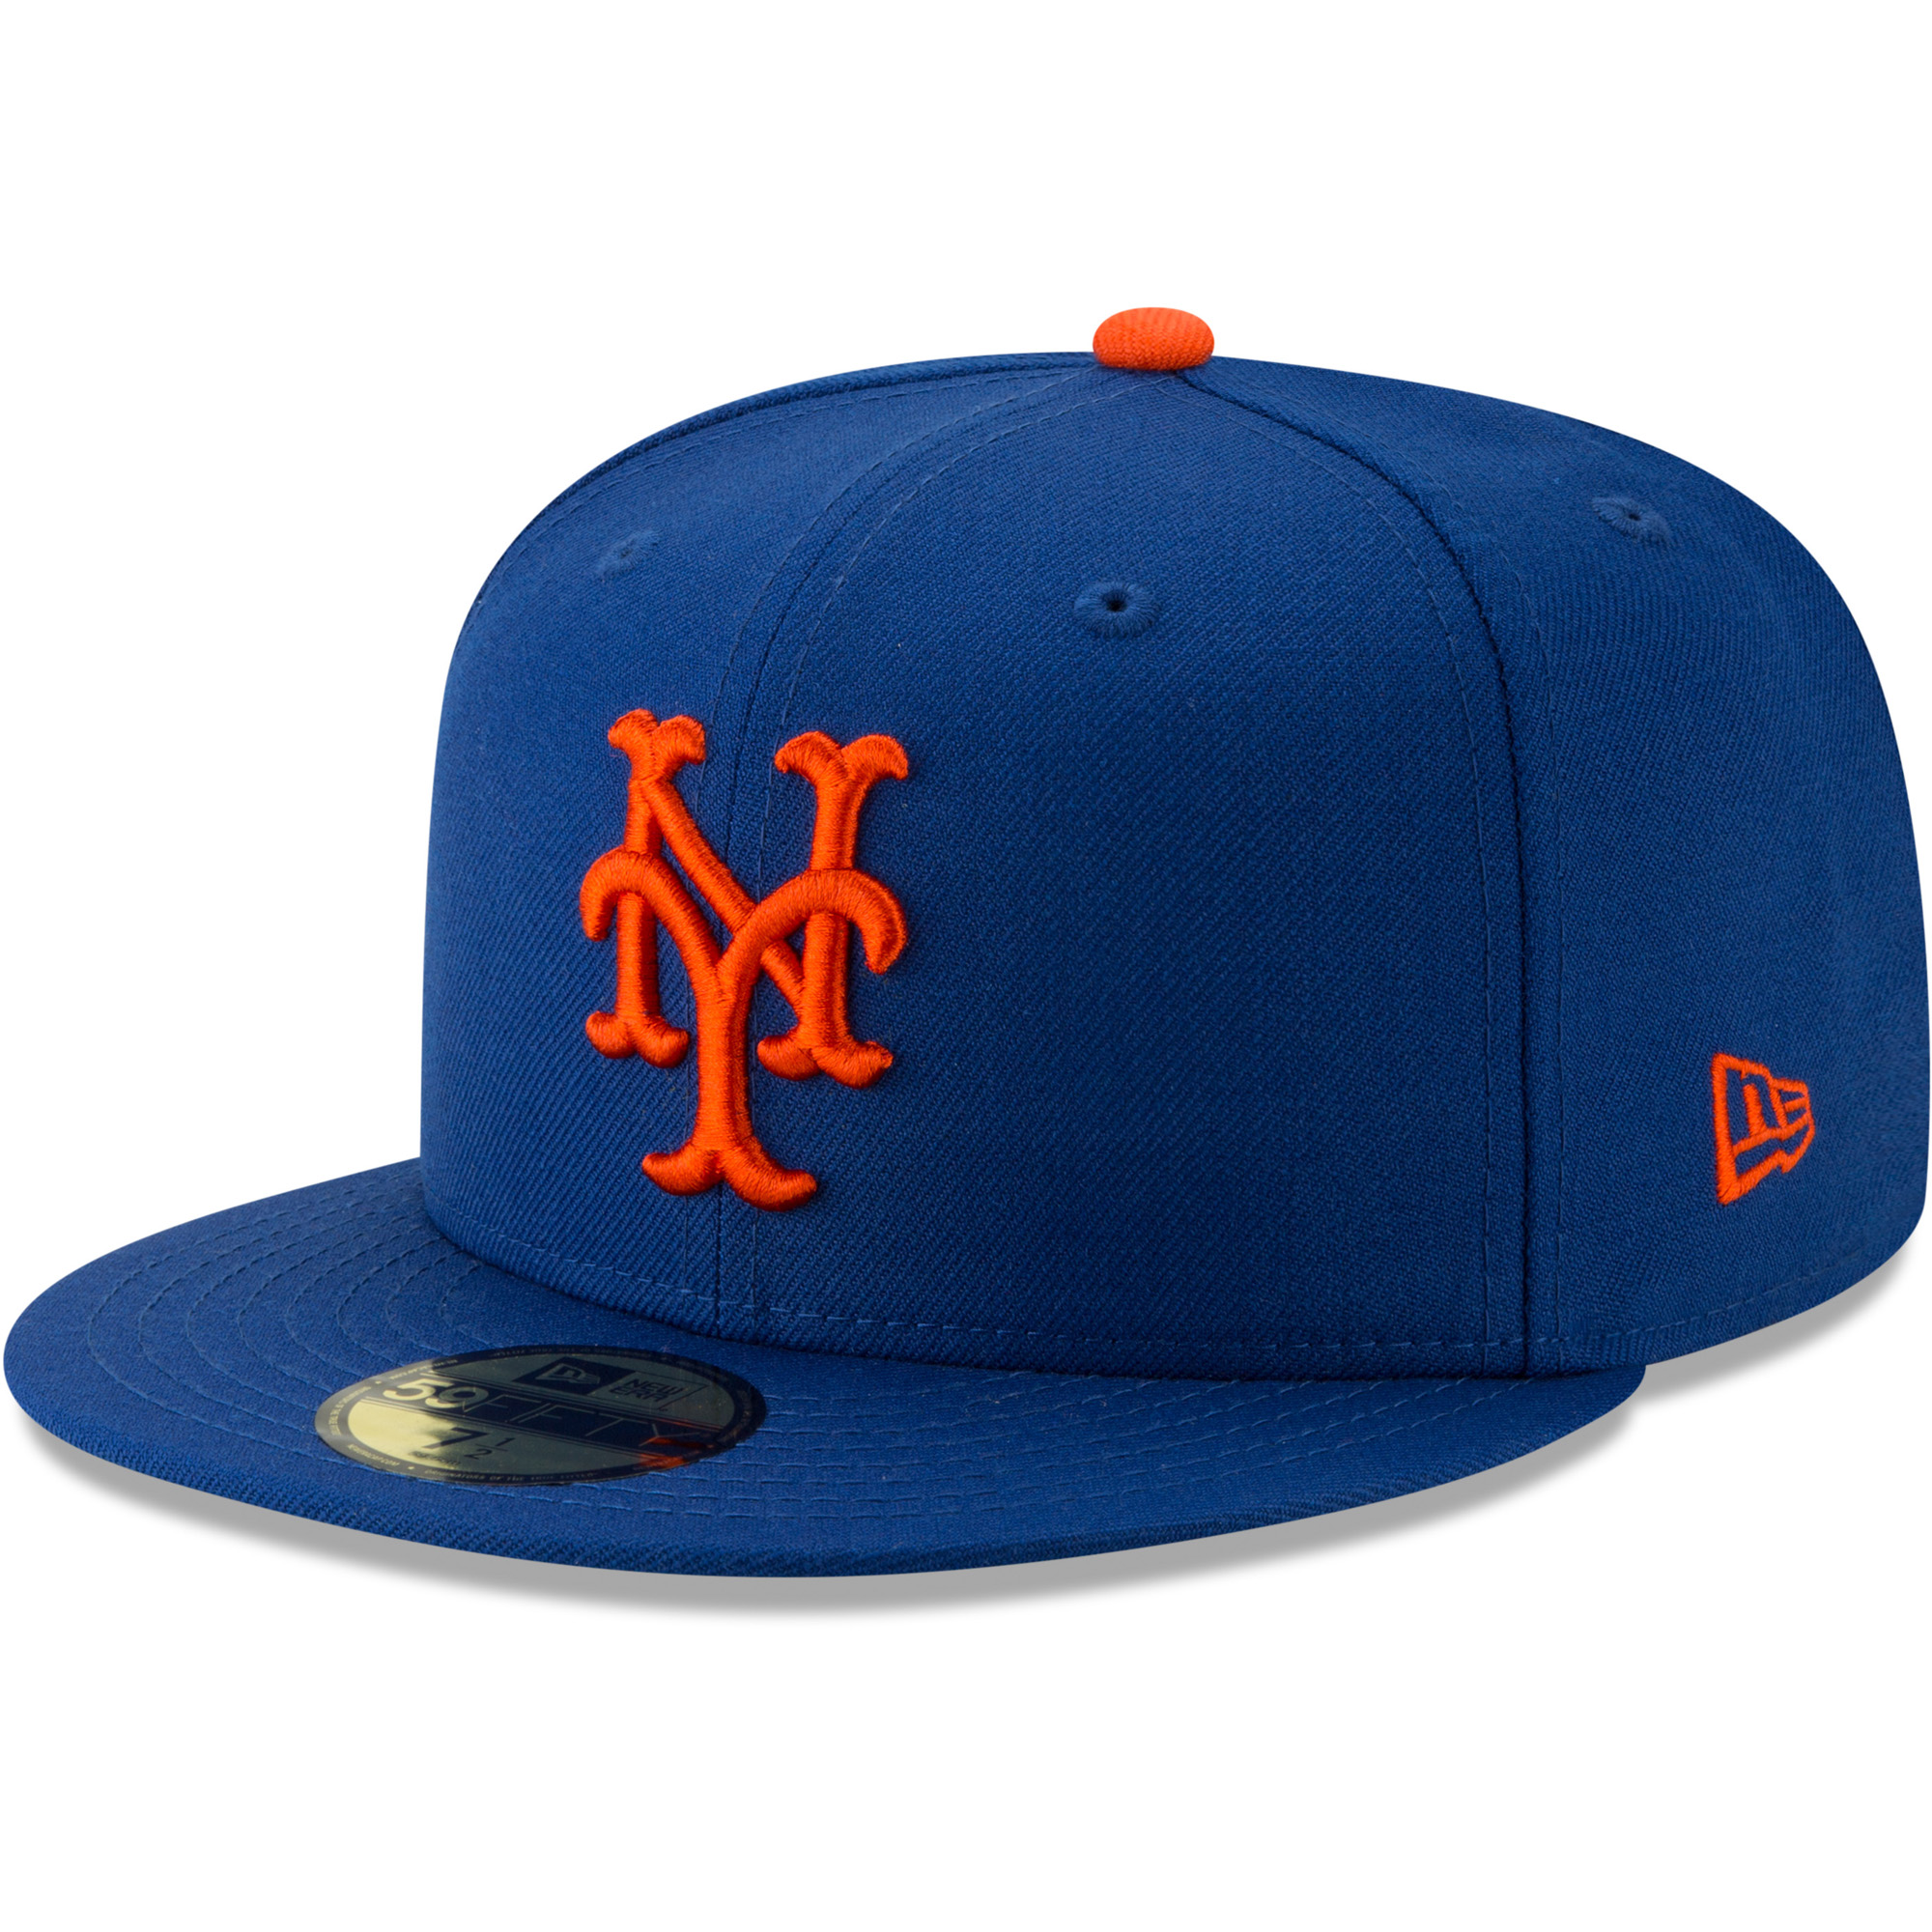 New York Mets New Era Cooperstown Collection Alt Logo Pack 59FIFTY Fitted Hat - Royal